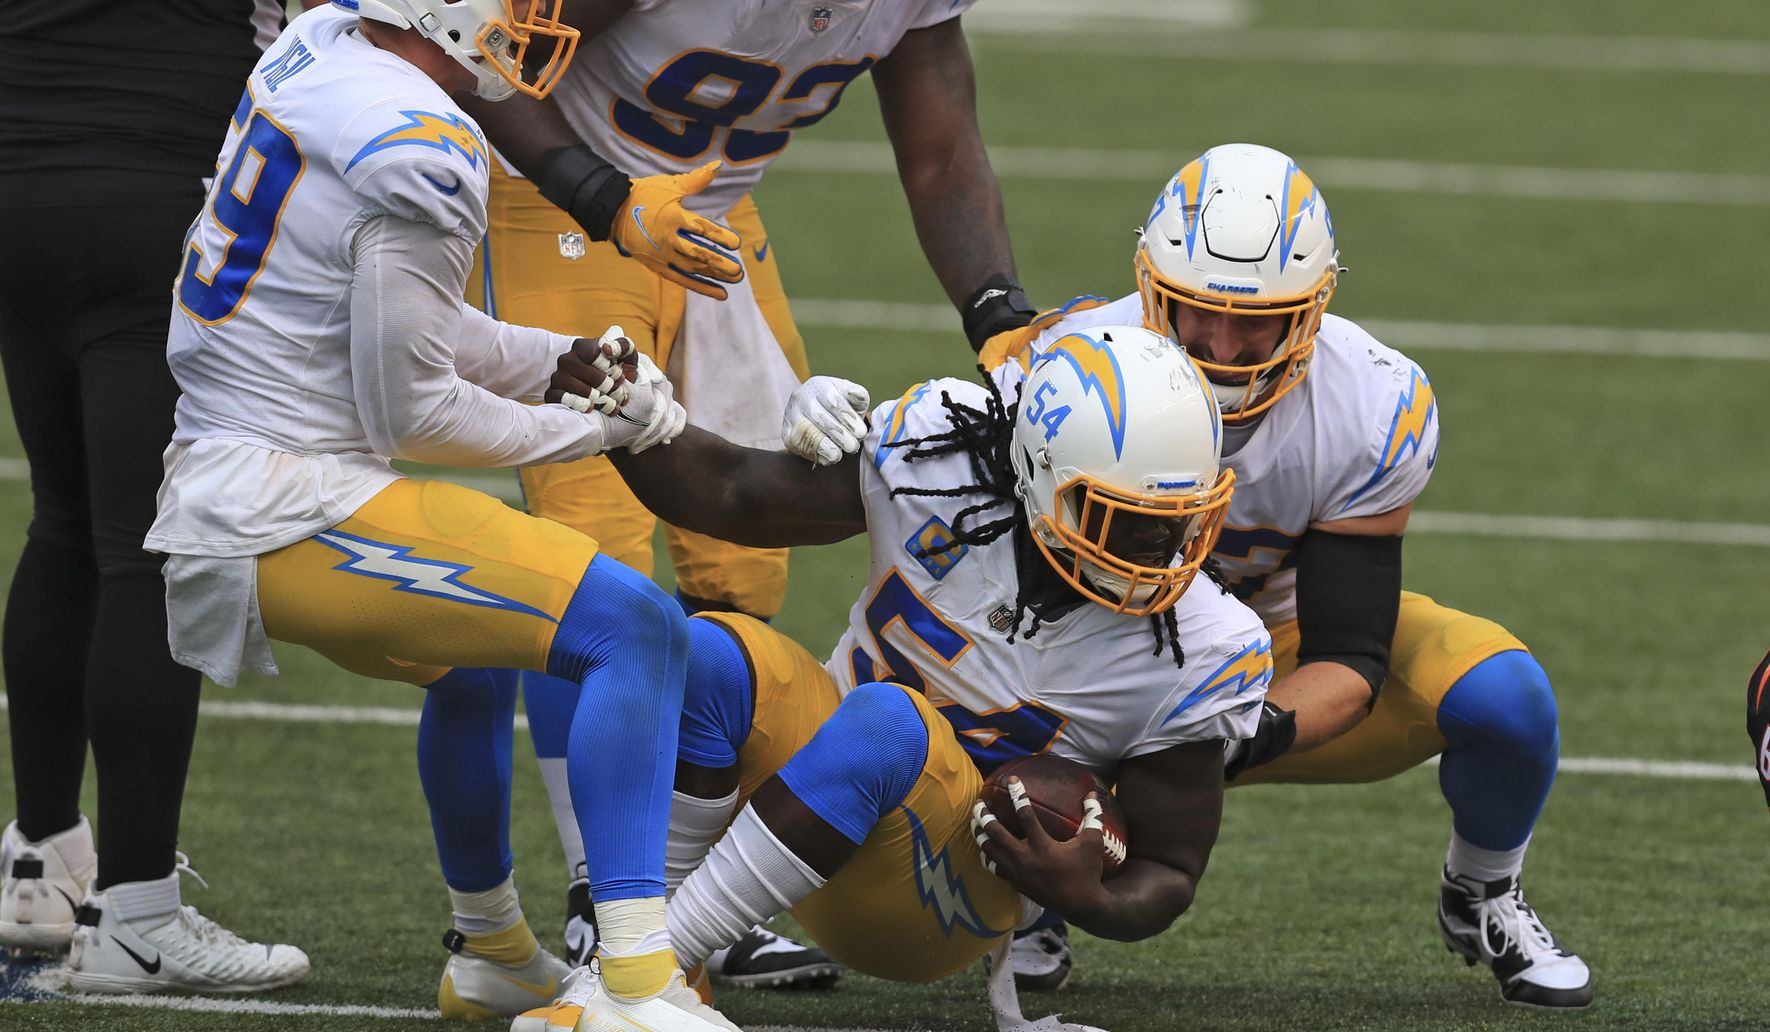 Chargers_bengals_football_10655_c0-169-3978-2488_s1770x1032